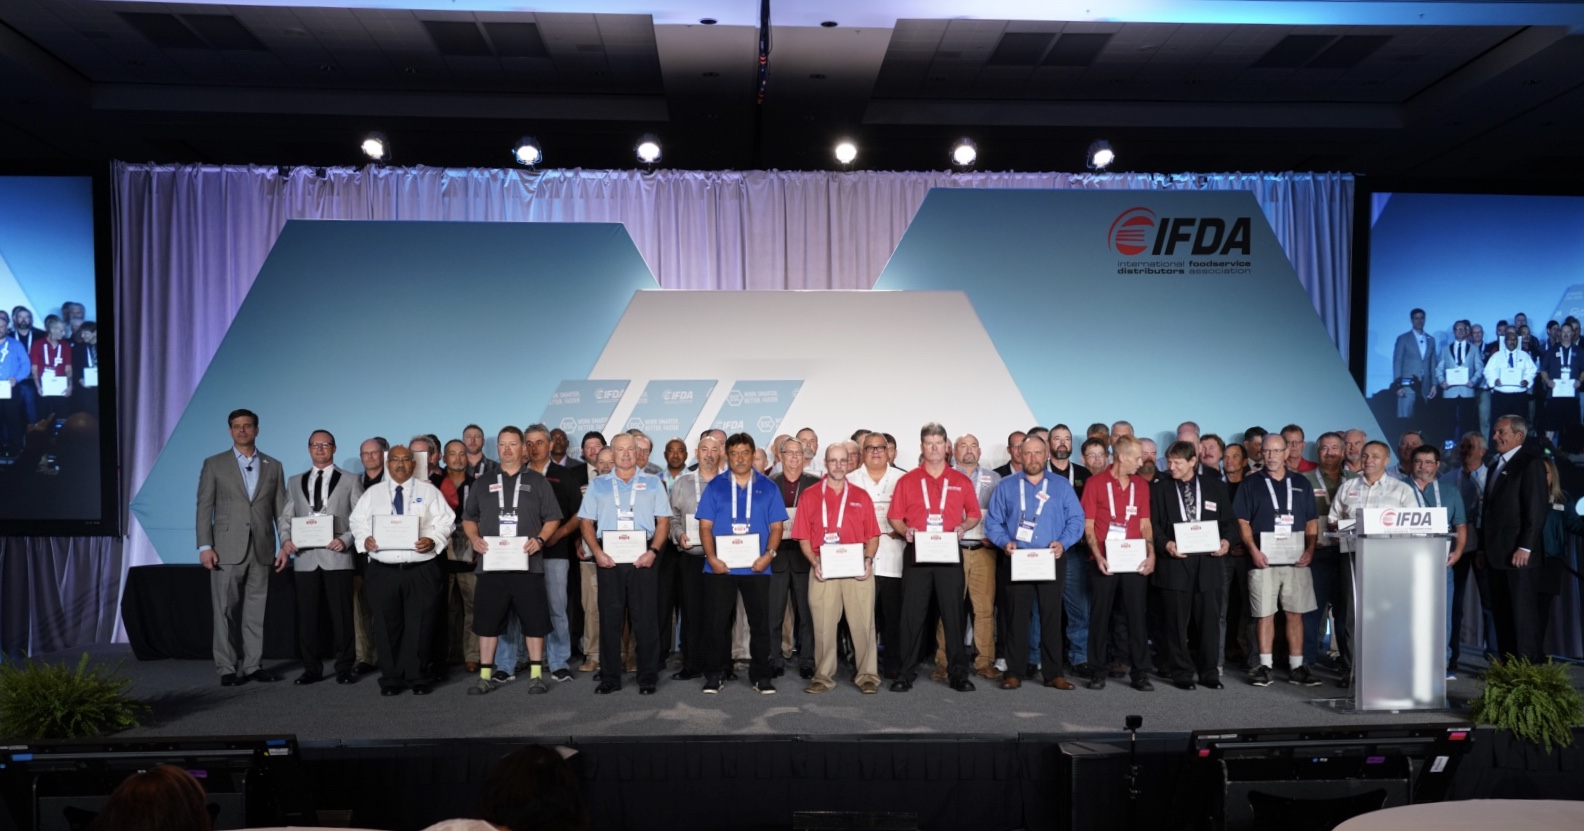 IFDA - IFDA Celebrates the 2019 Truck Driver Hall of Fame Inductees